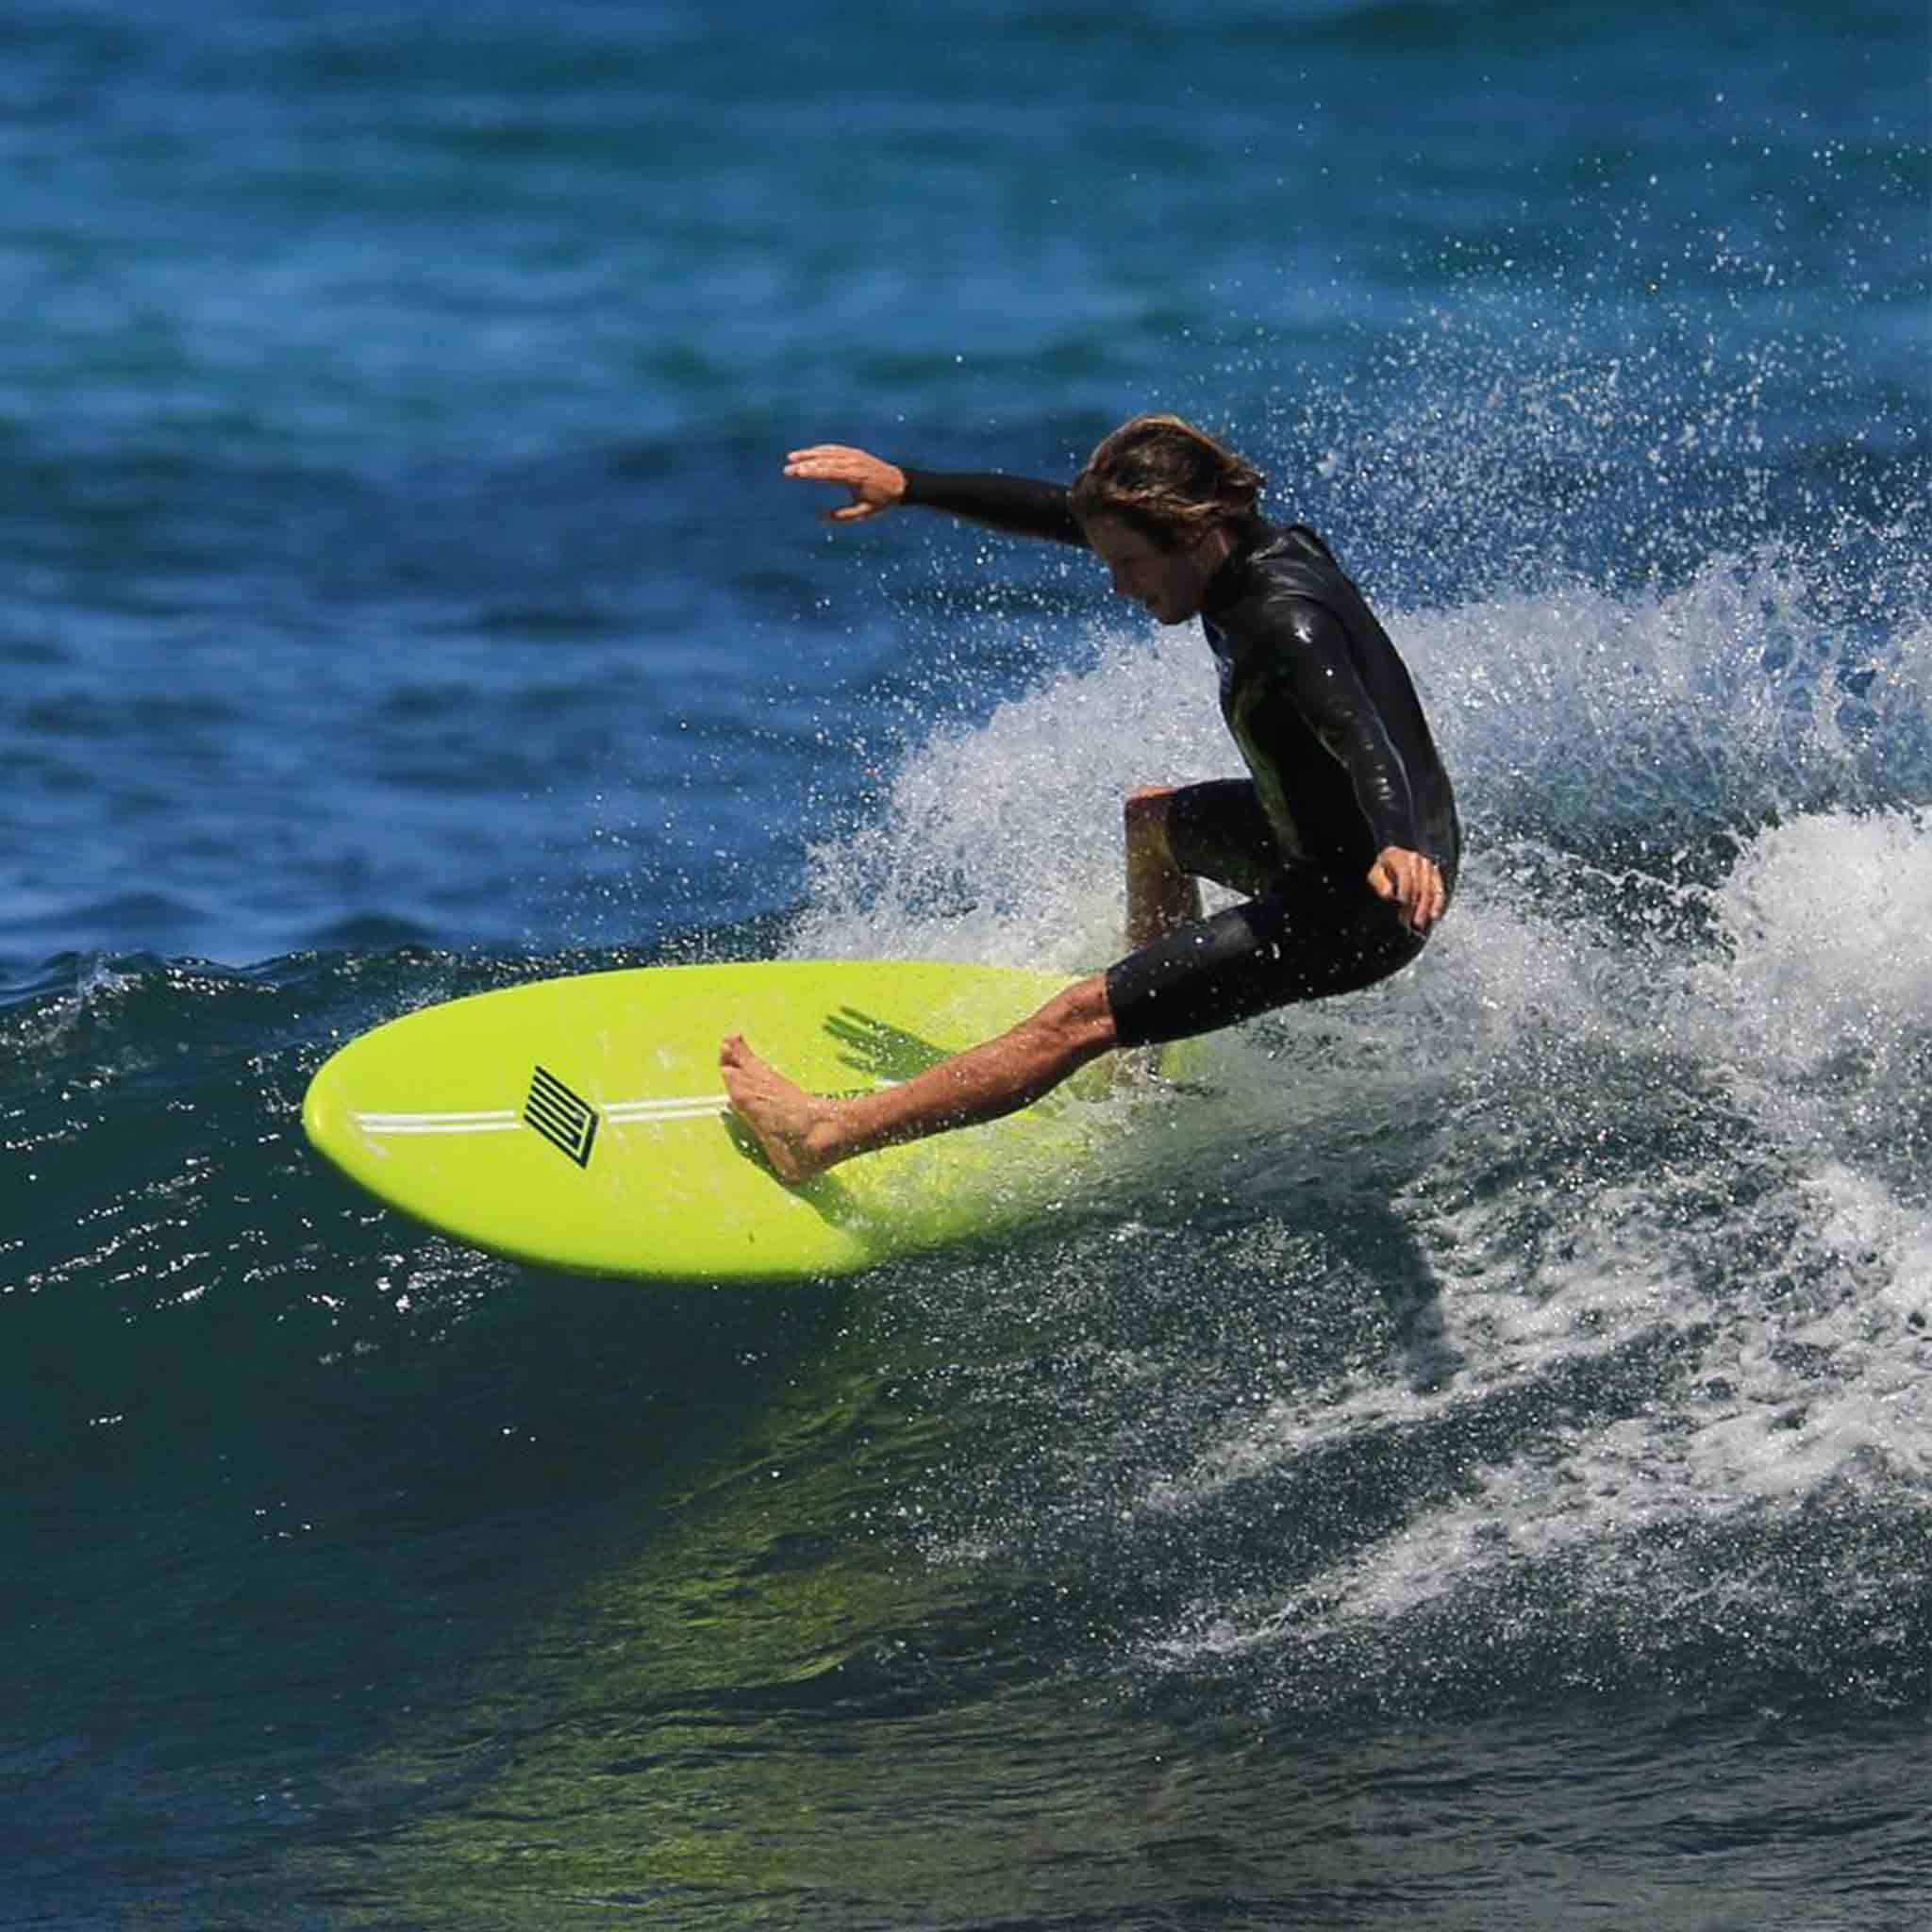 Expand Your Quiver - The Ezi-Rider Soft Board Range